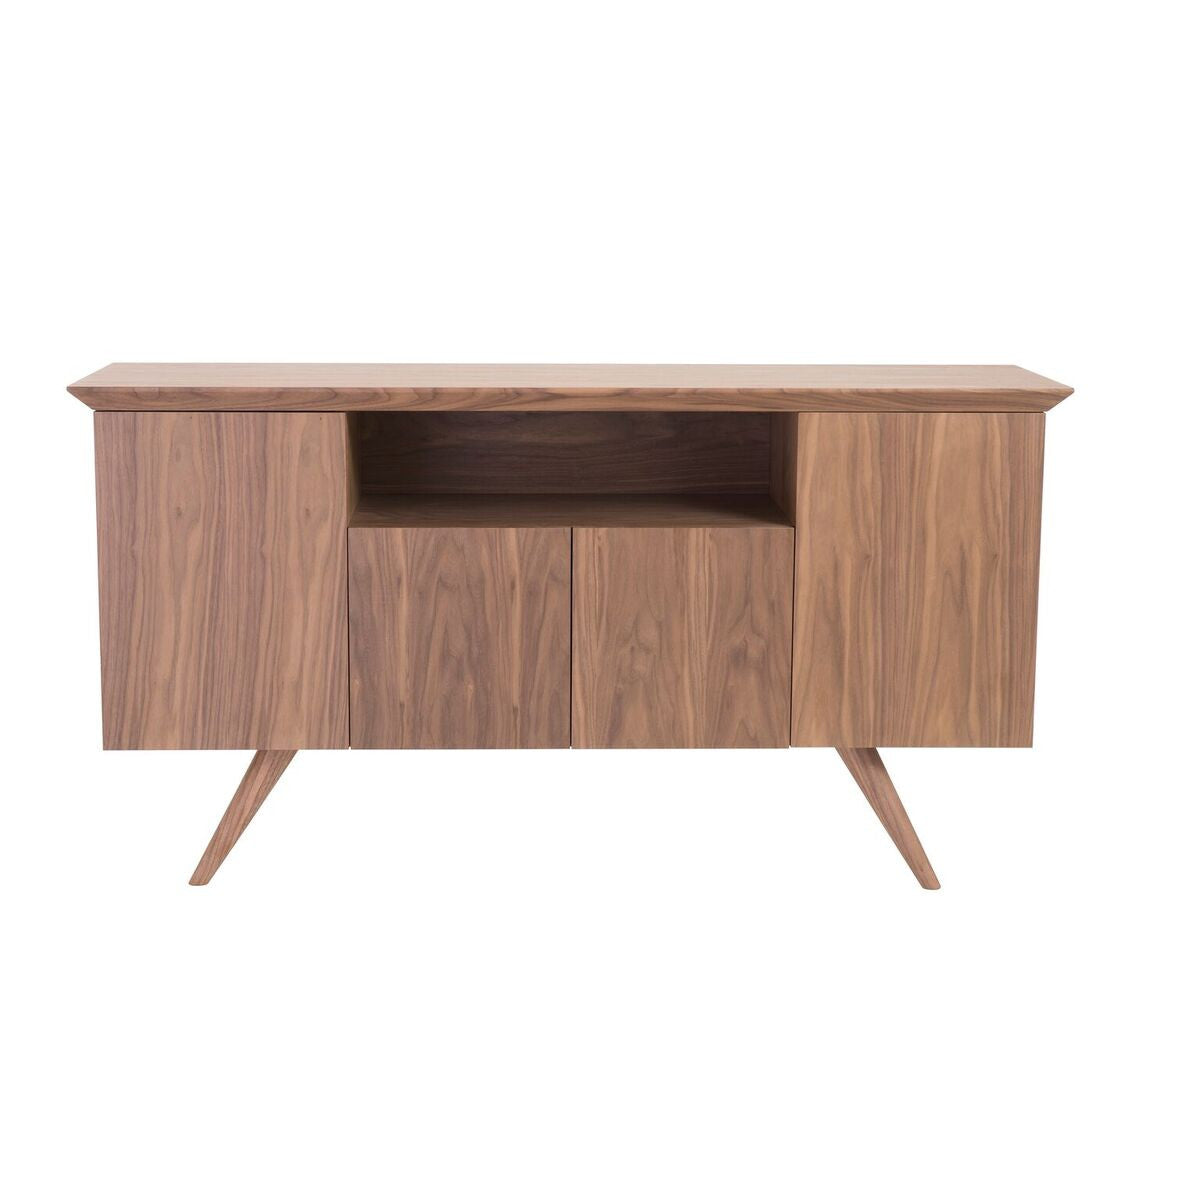 "Elegant 63"" Walnut Credenza with Glass Shelves"